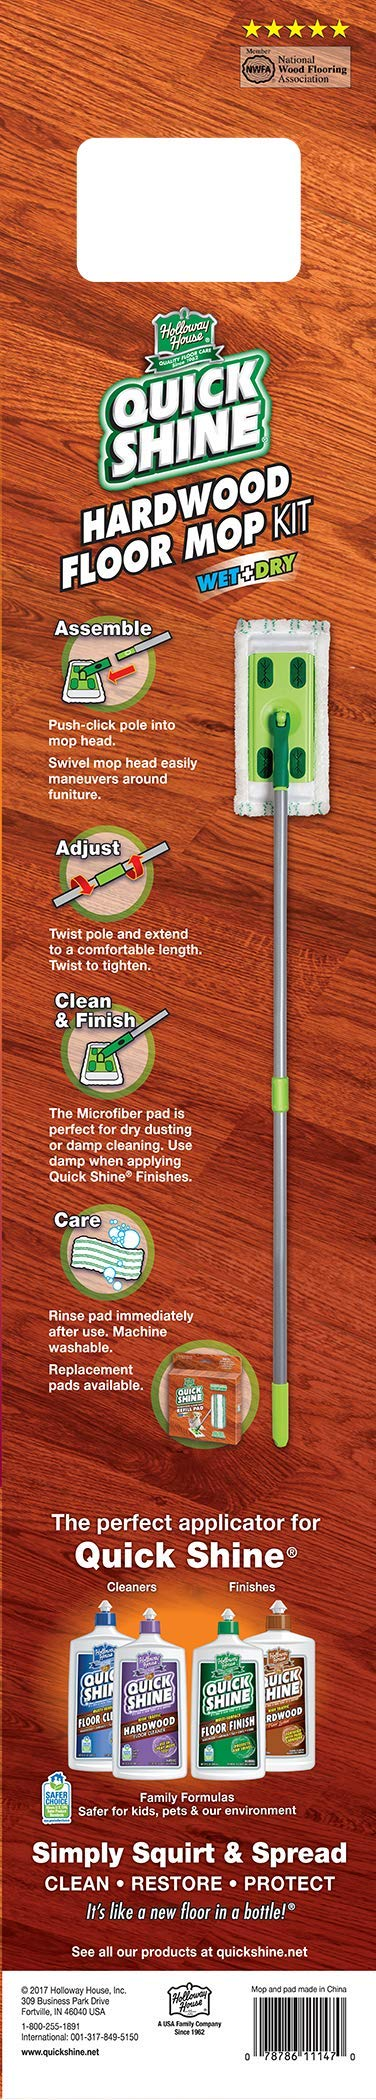 Quick Shine Hardwood Floor Kit with Microfiber Mop Pad by Quick Shine (Image #1)